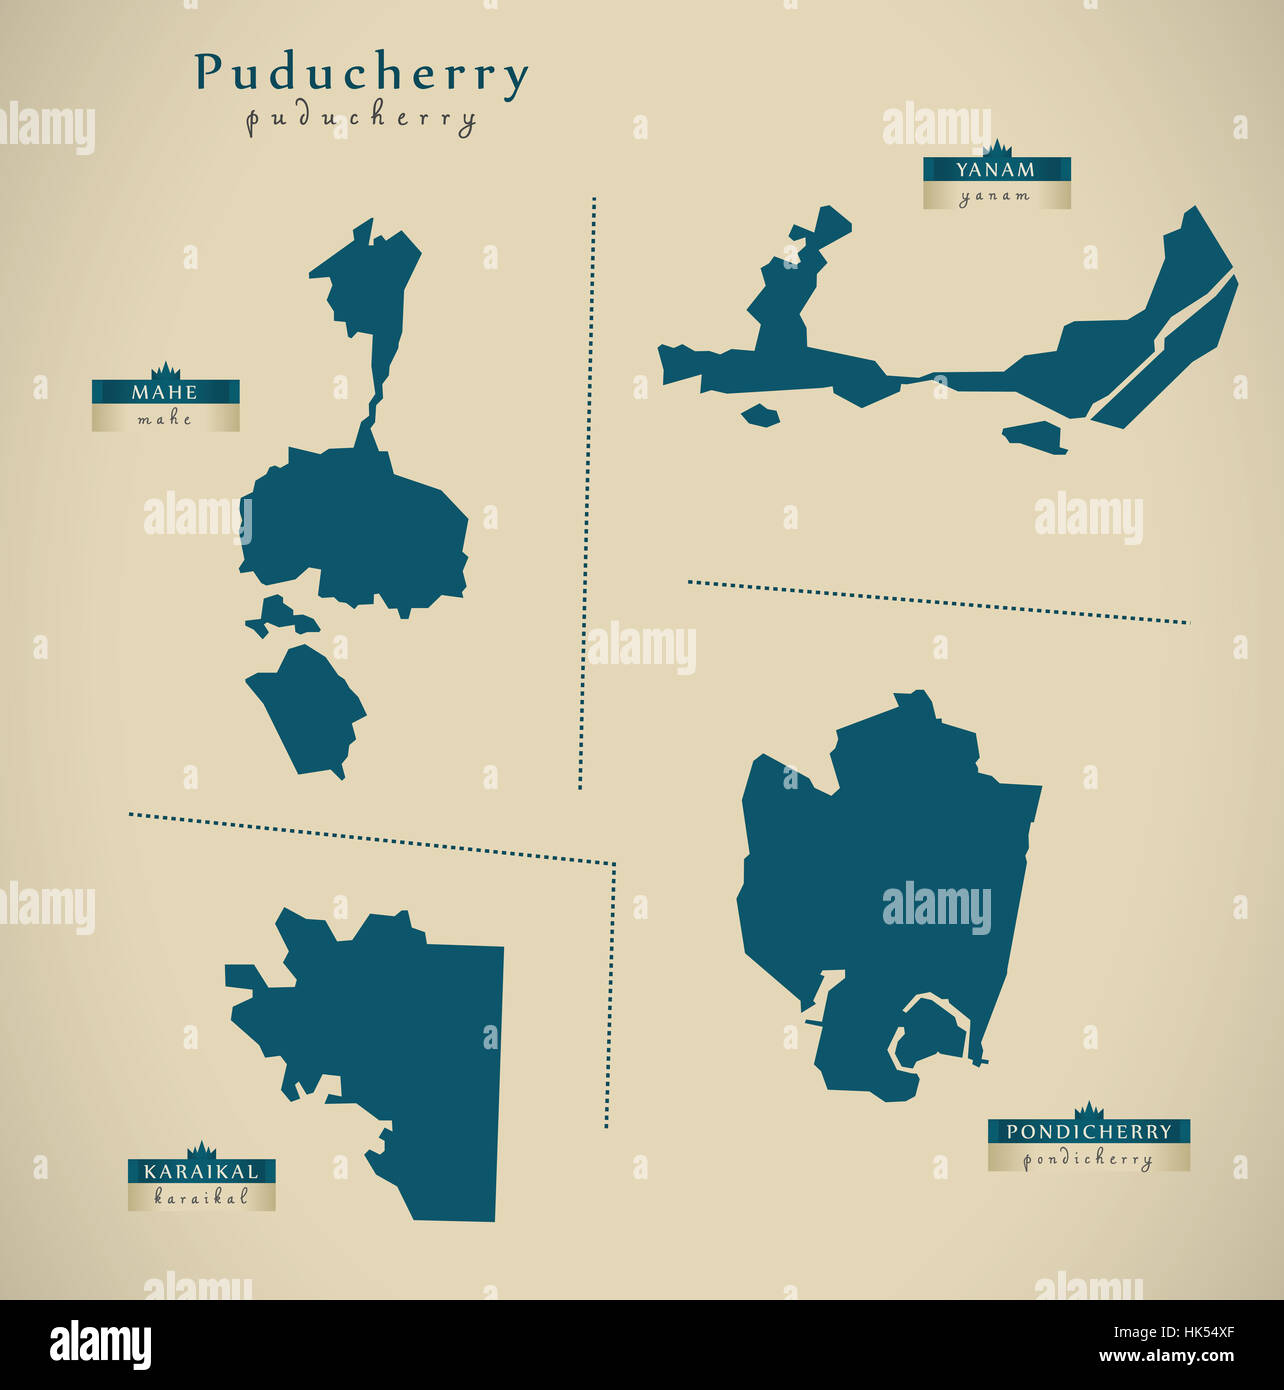 Modern Map - Puducherry IN India federal state illustration silhouette - Stock Image